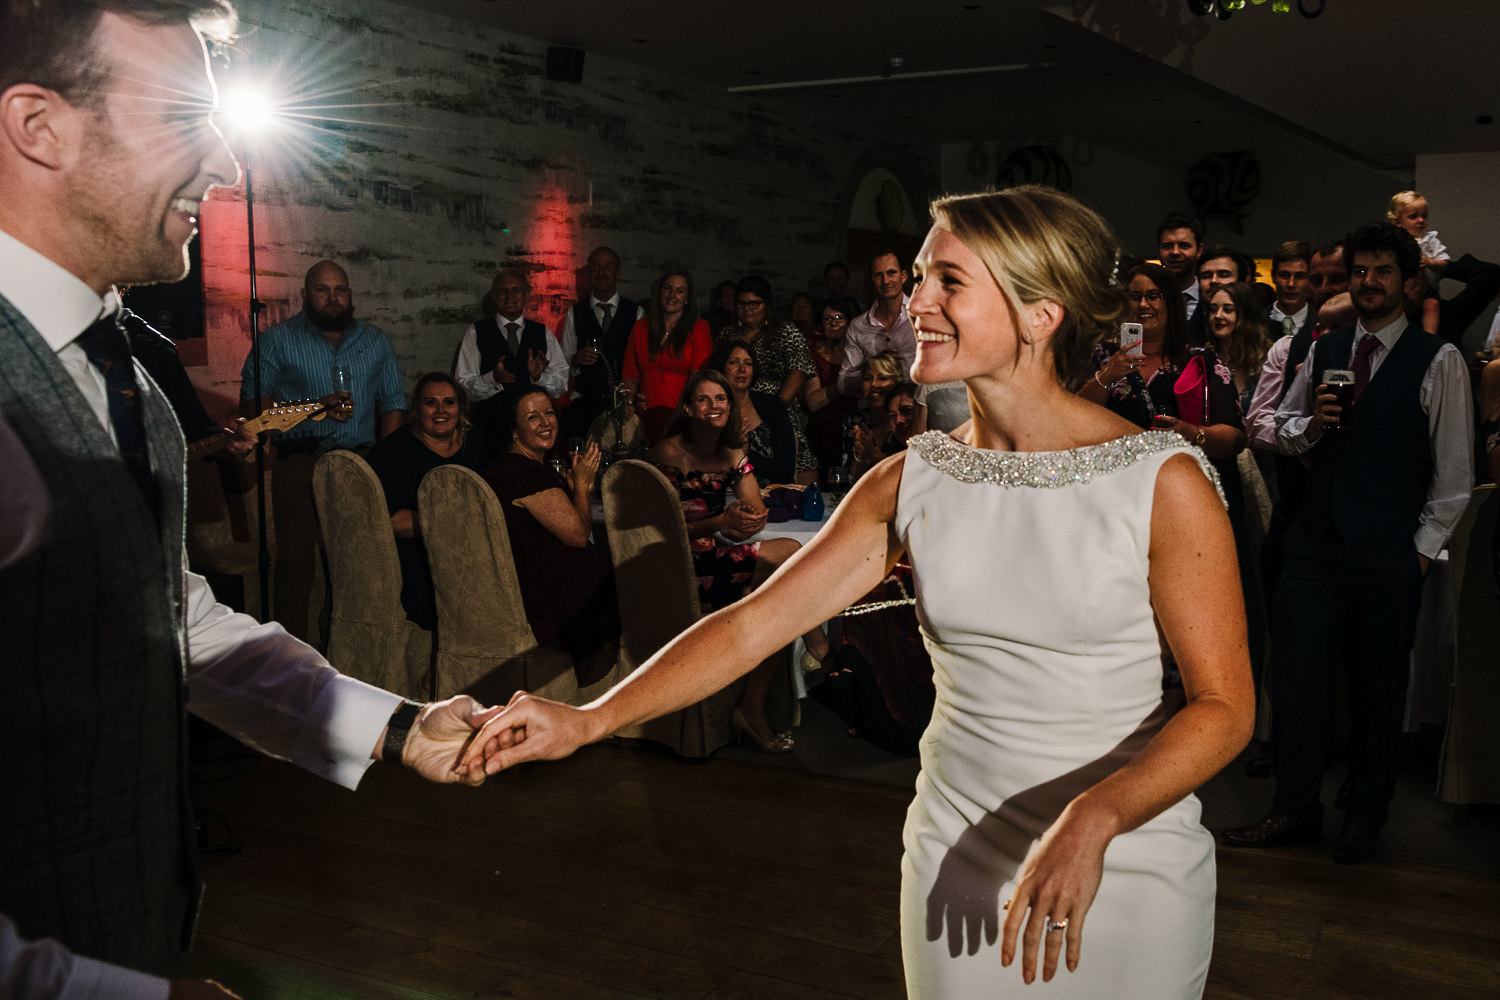 Dancing photo with bride smiling